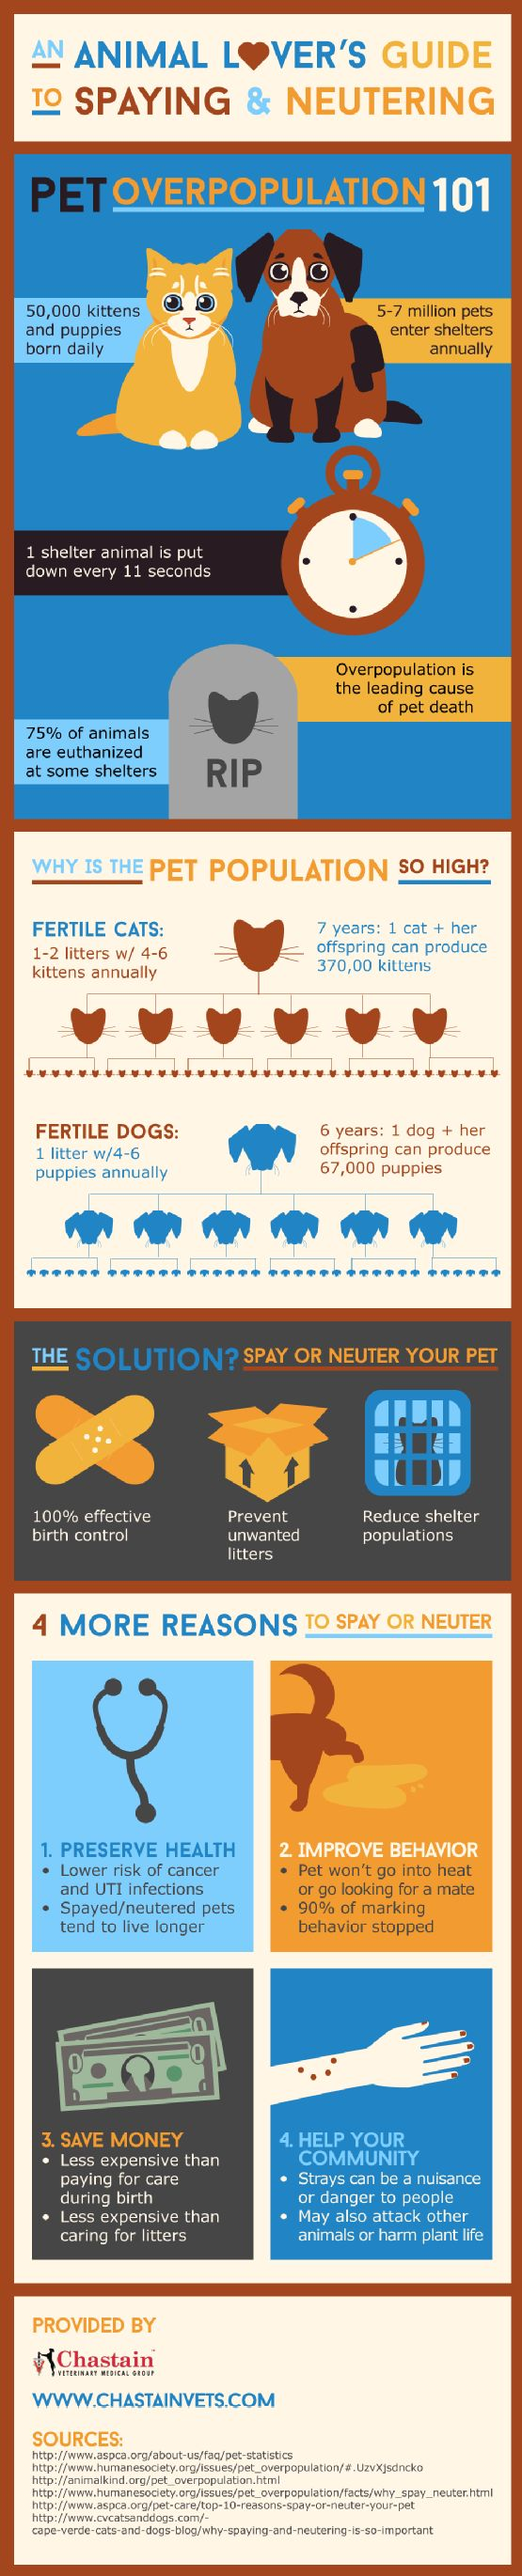 It's World Spay Day! Here's how fixing your pet saves